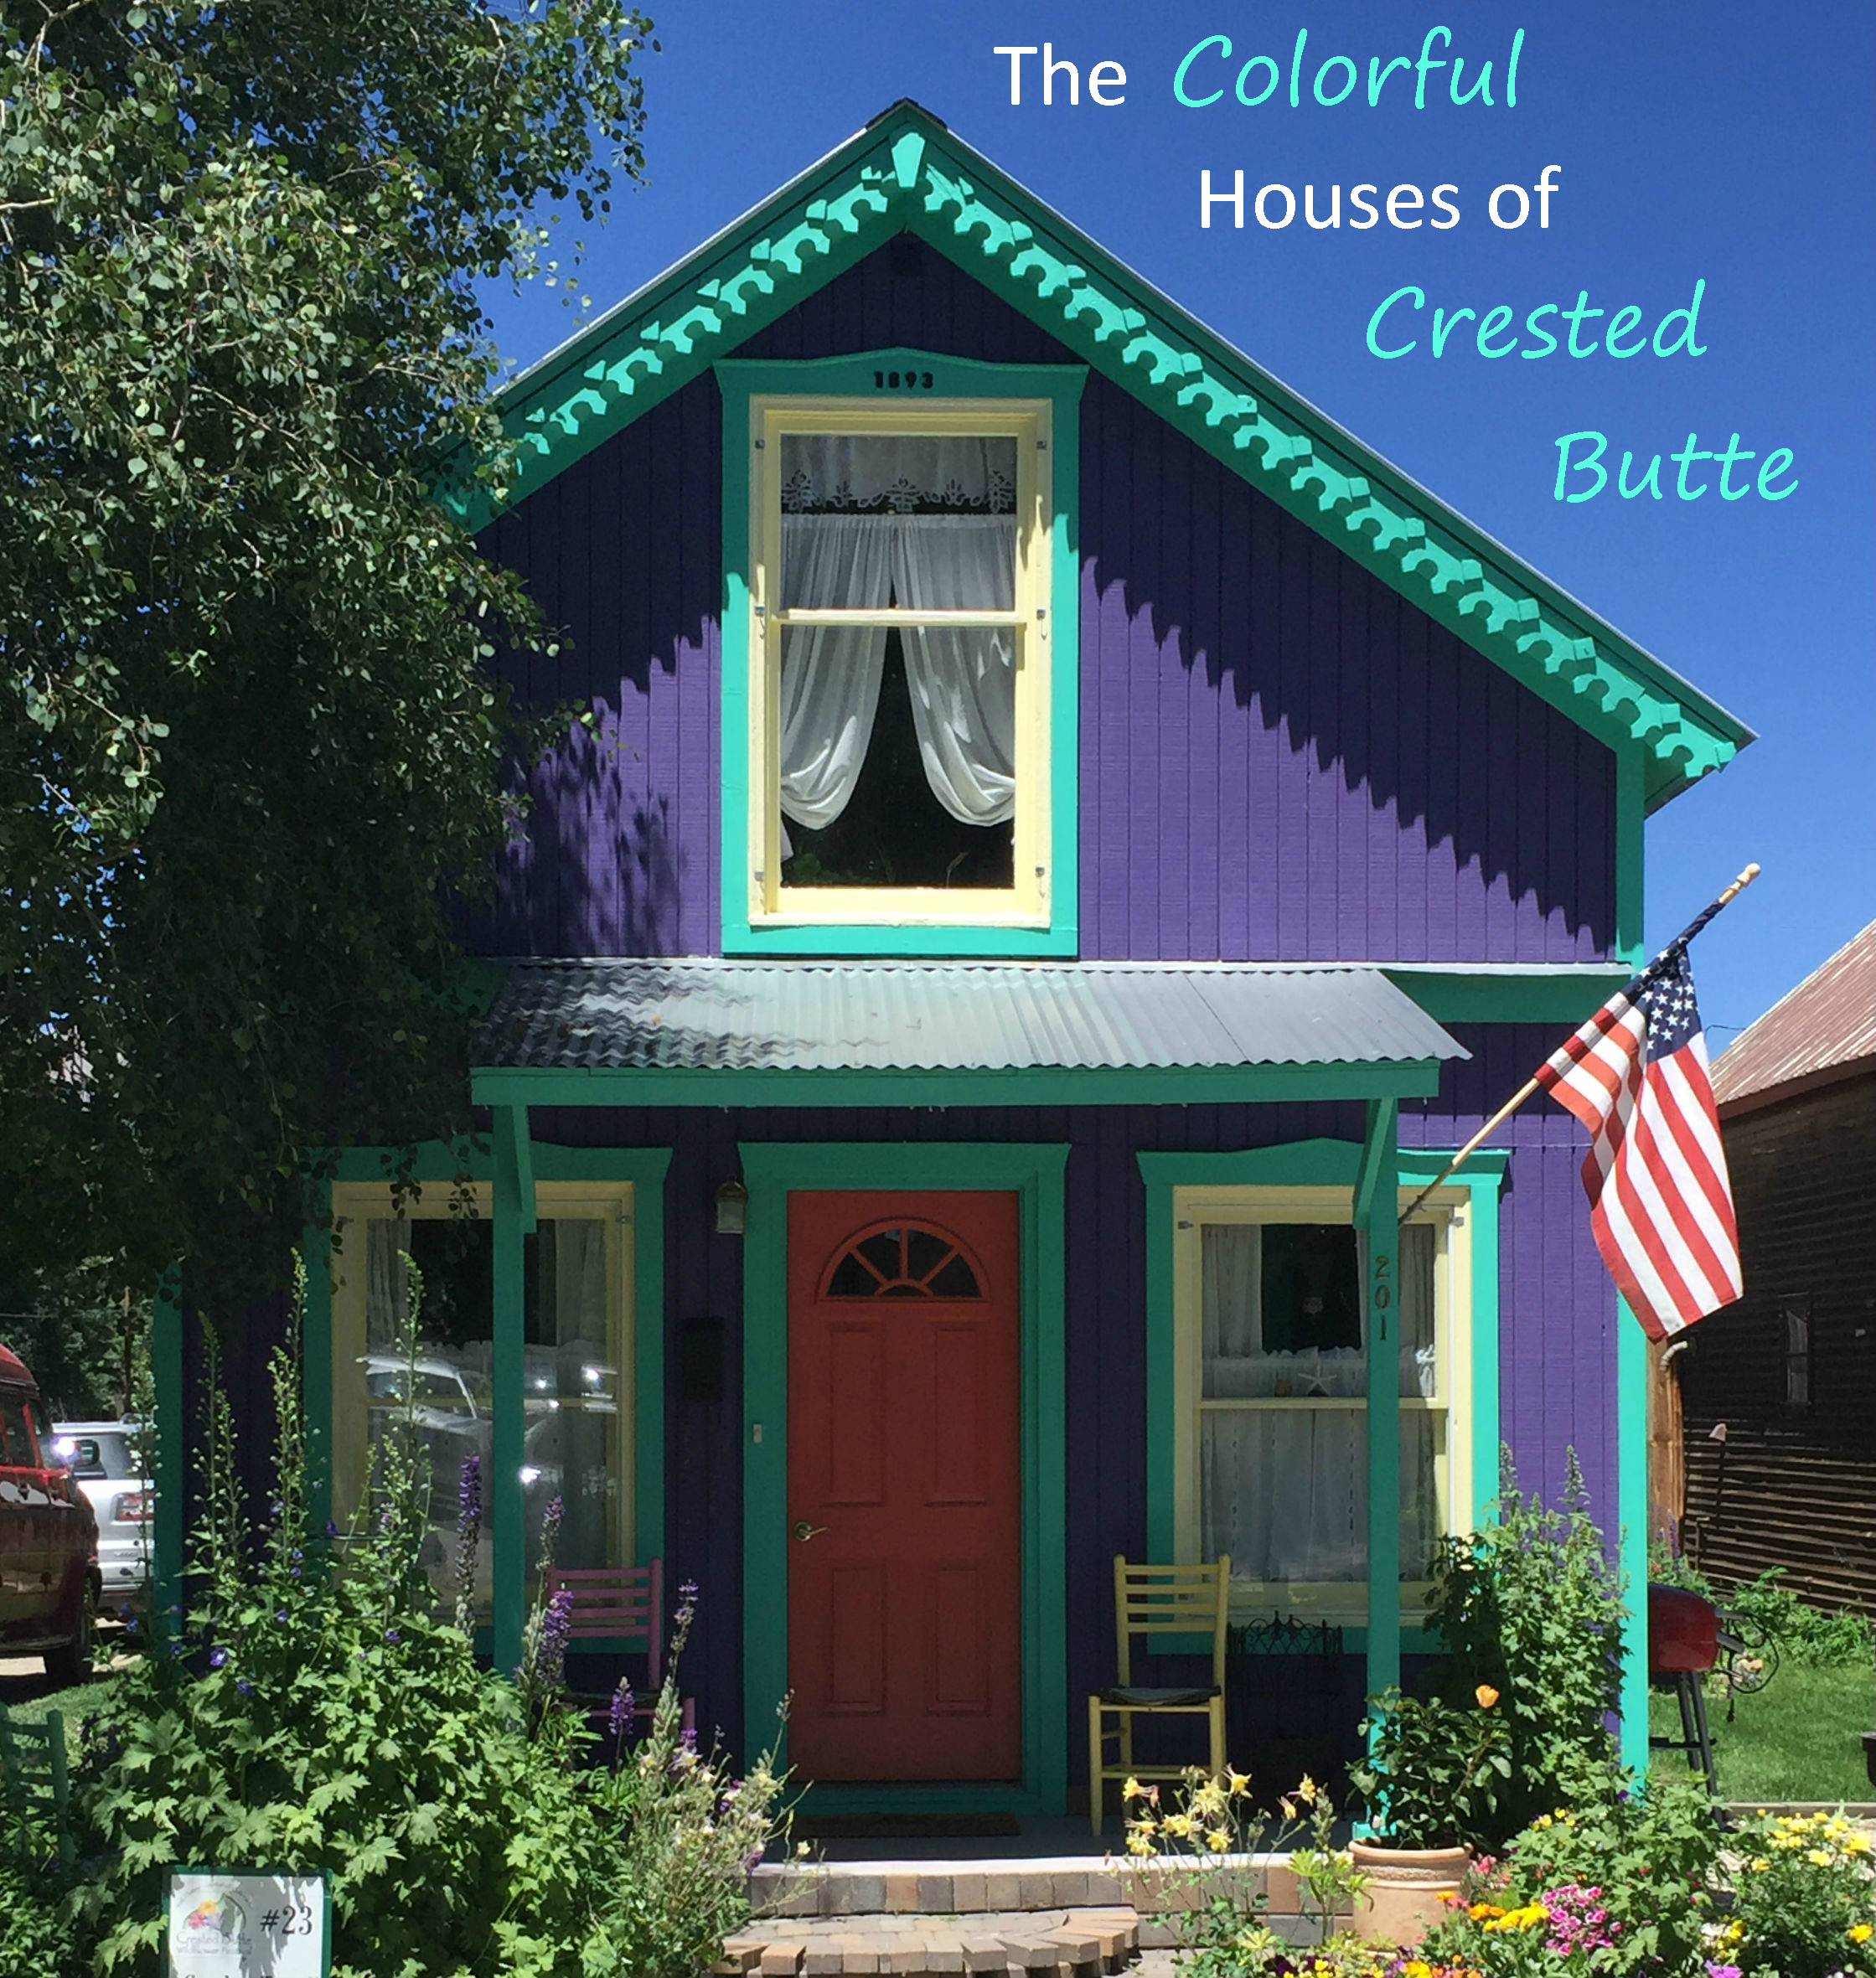 Crested-Butte-Colorful-Home-2-caption